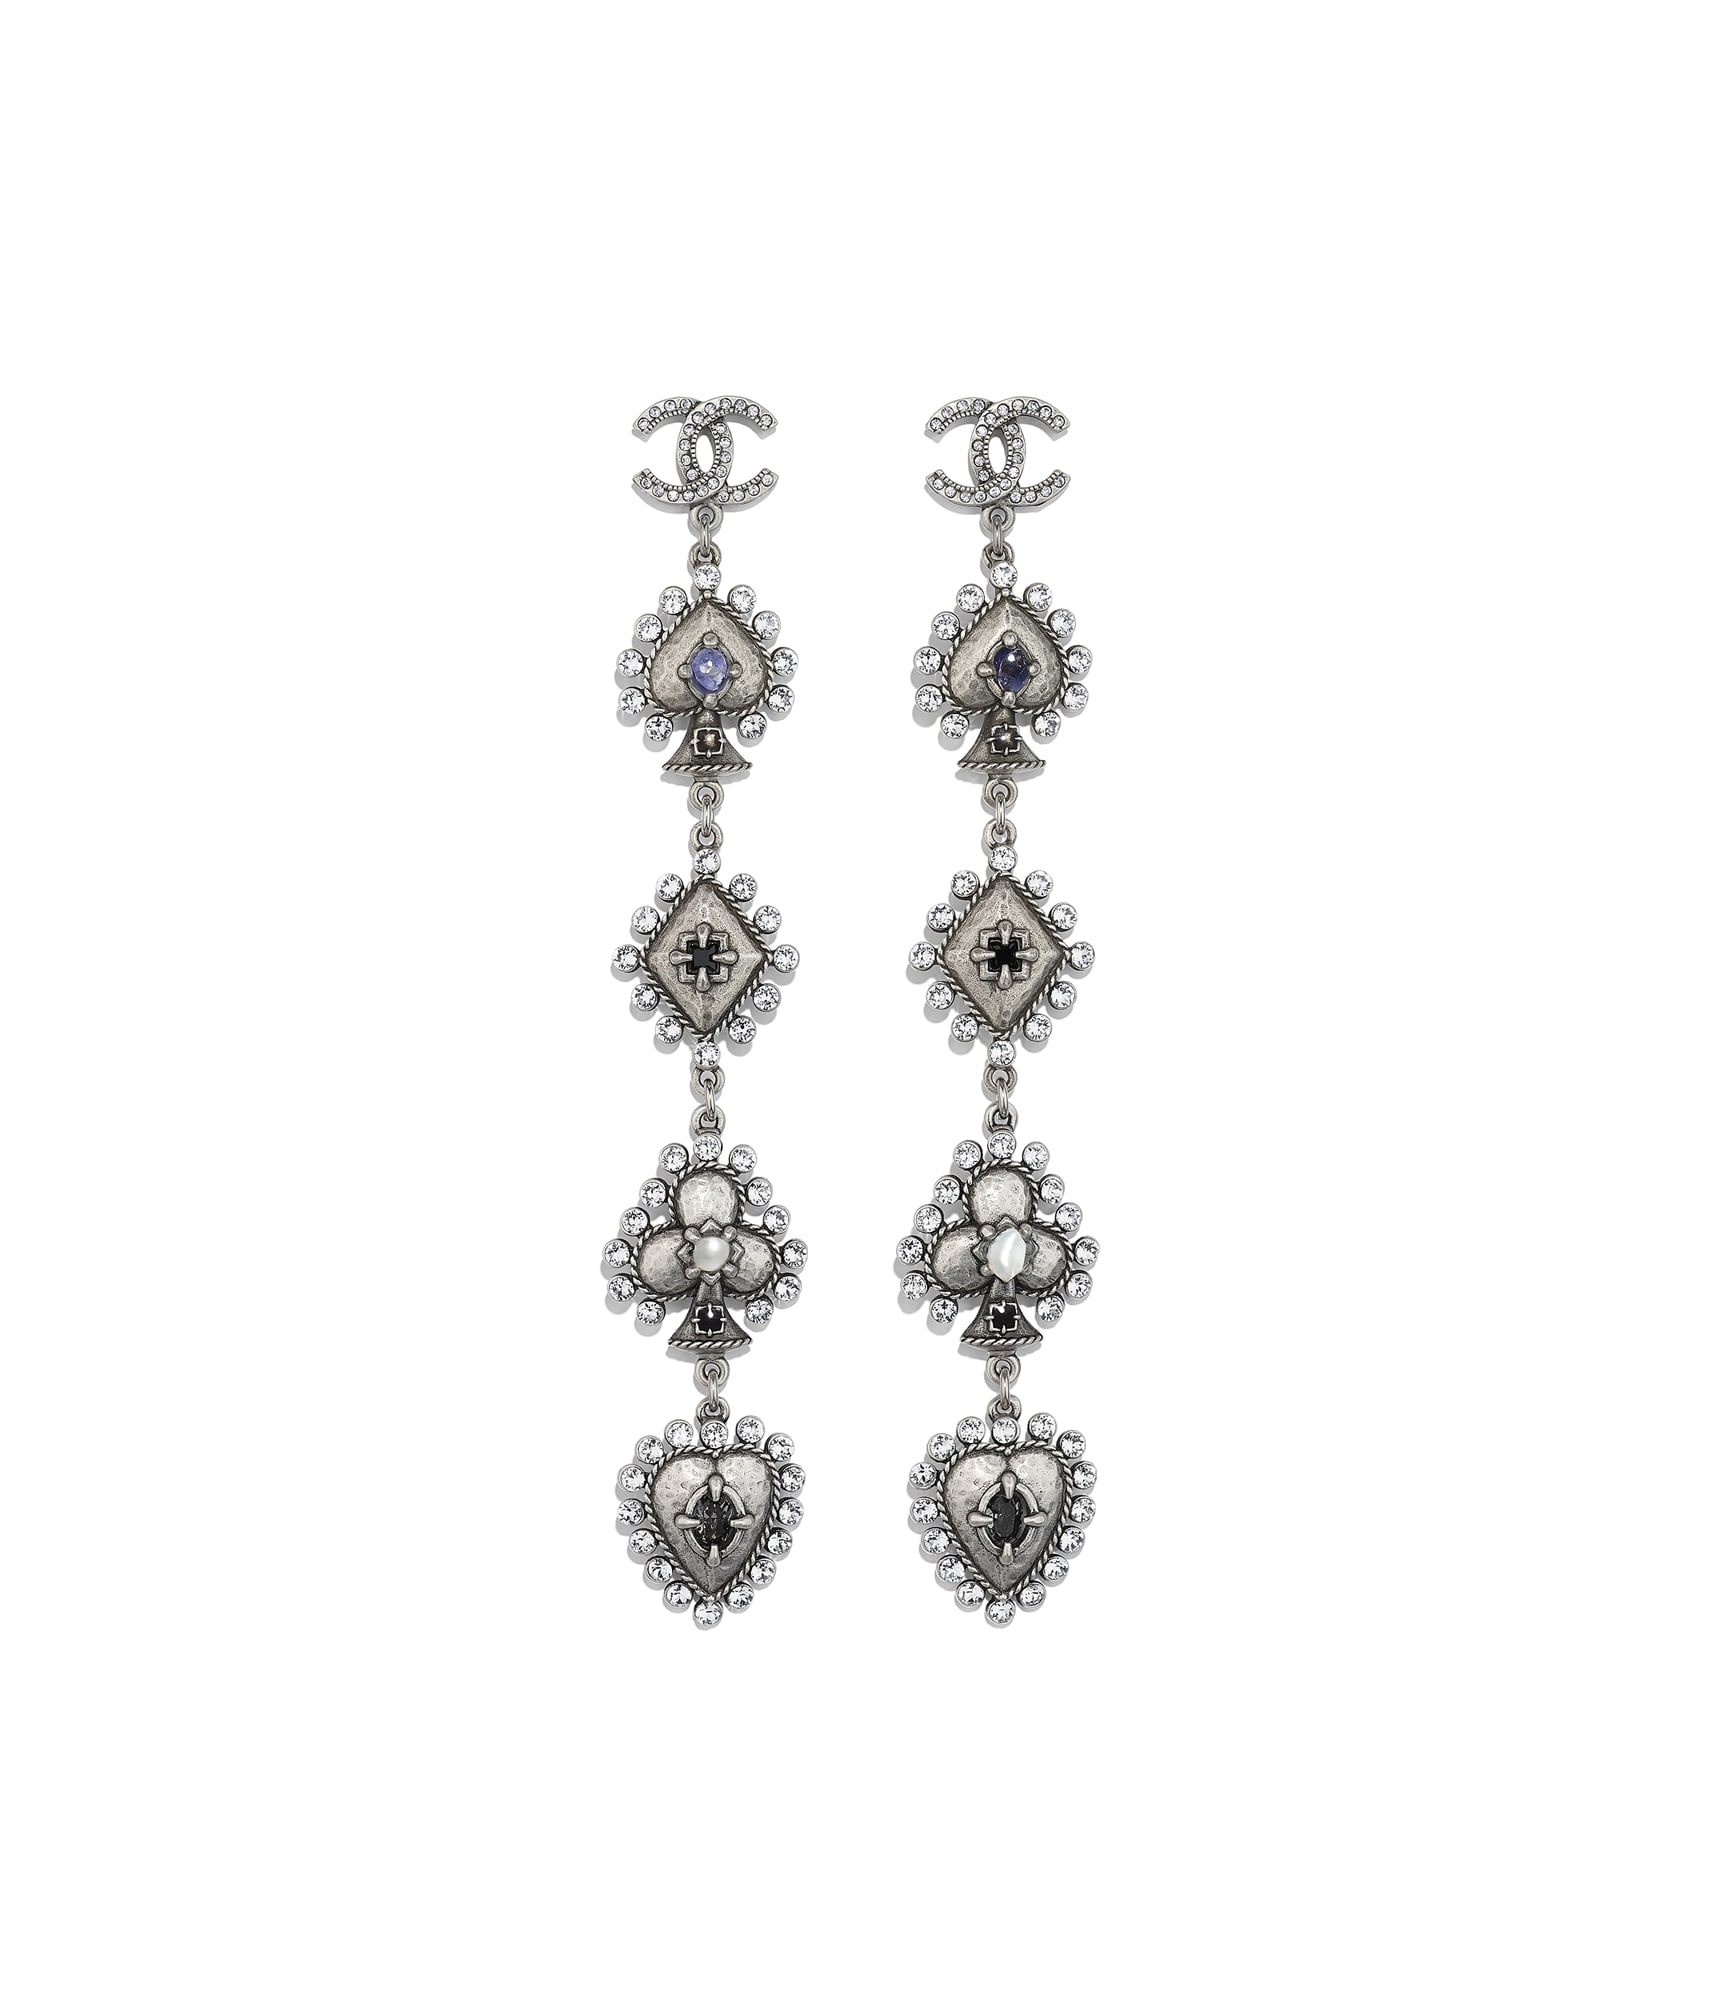 444b737c1b524 Earrings - Costume Jewellery - CHANEL